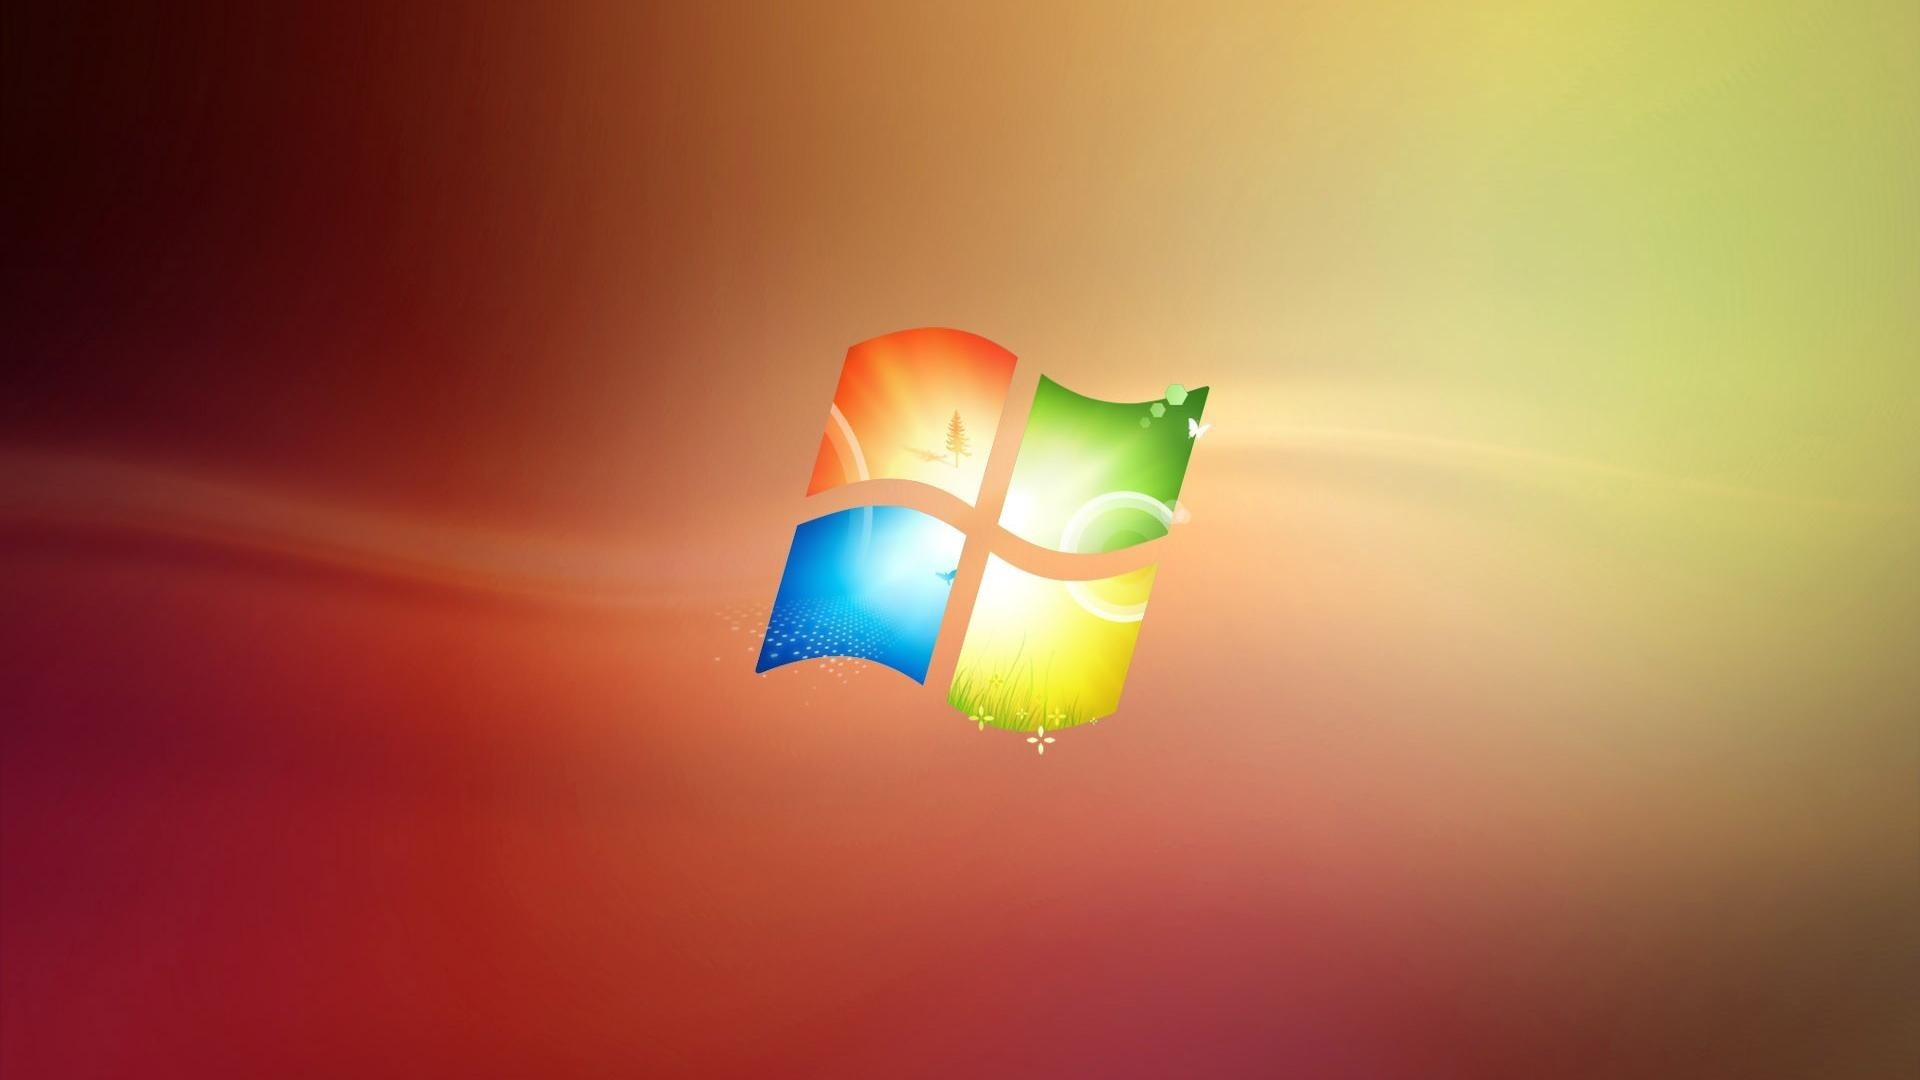 1920x1080 1920x1200 Free Windows 7 Ultimate 52 Wallpaper